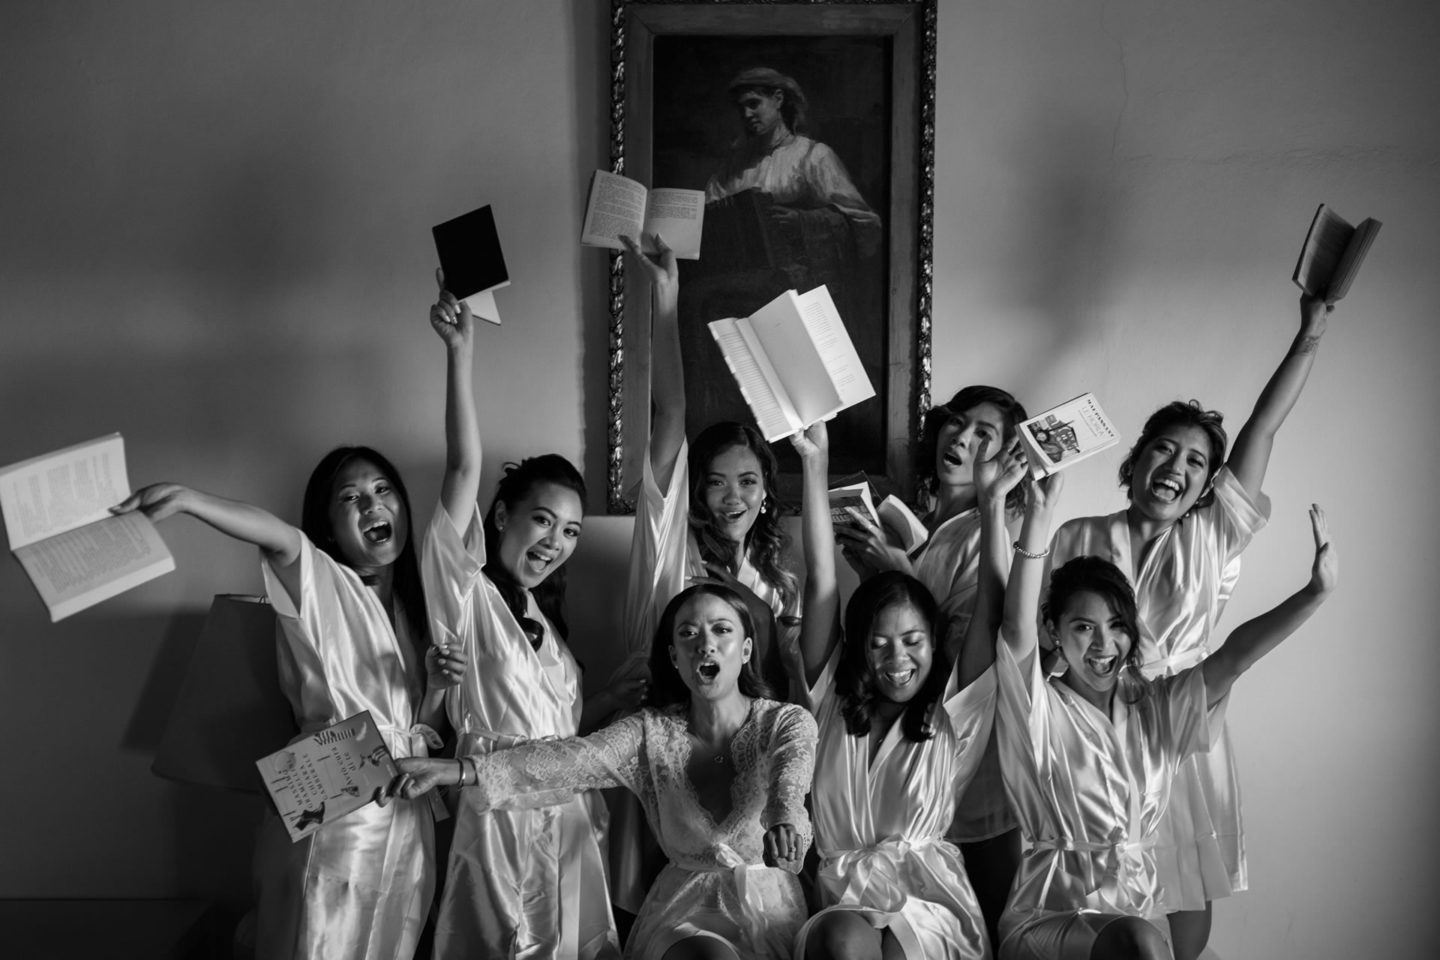 Students :: Groups Bridal Parties :: David Bastianoni wedding photographer